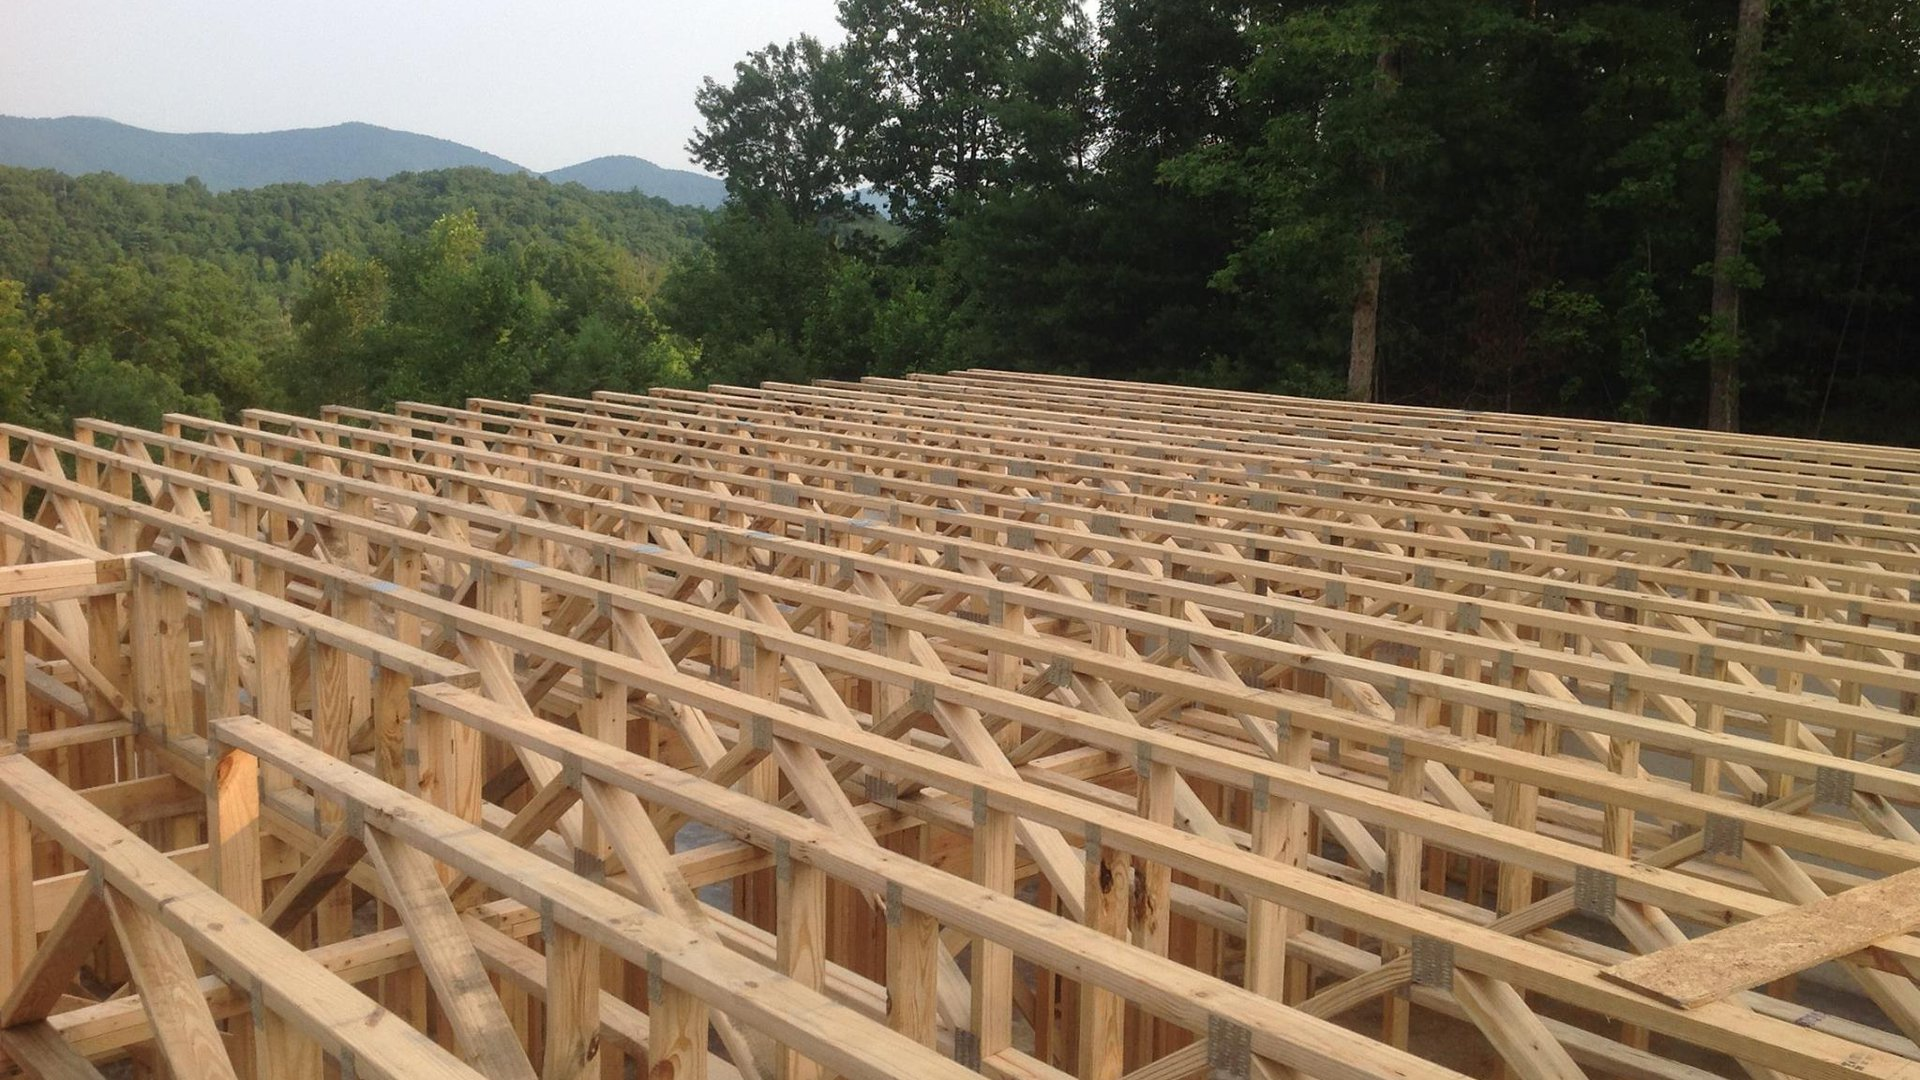 Floor_Trusses_With_View.jpg